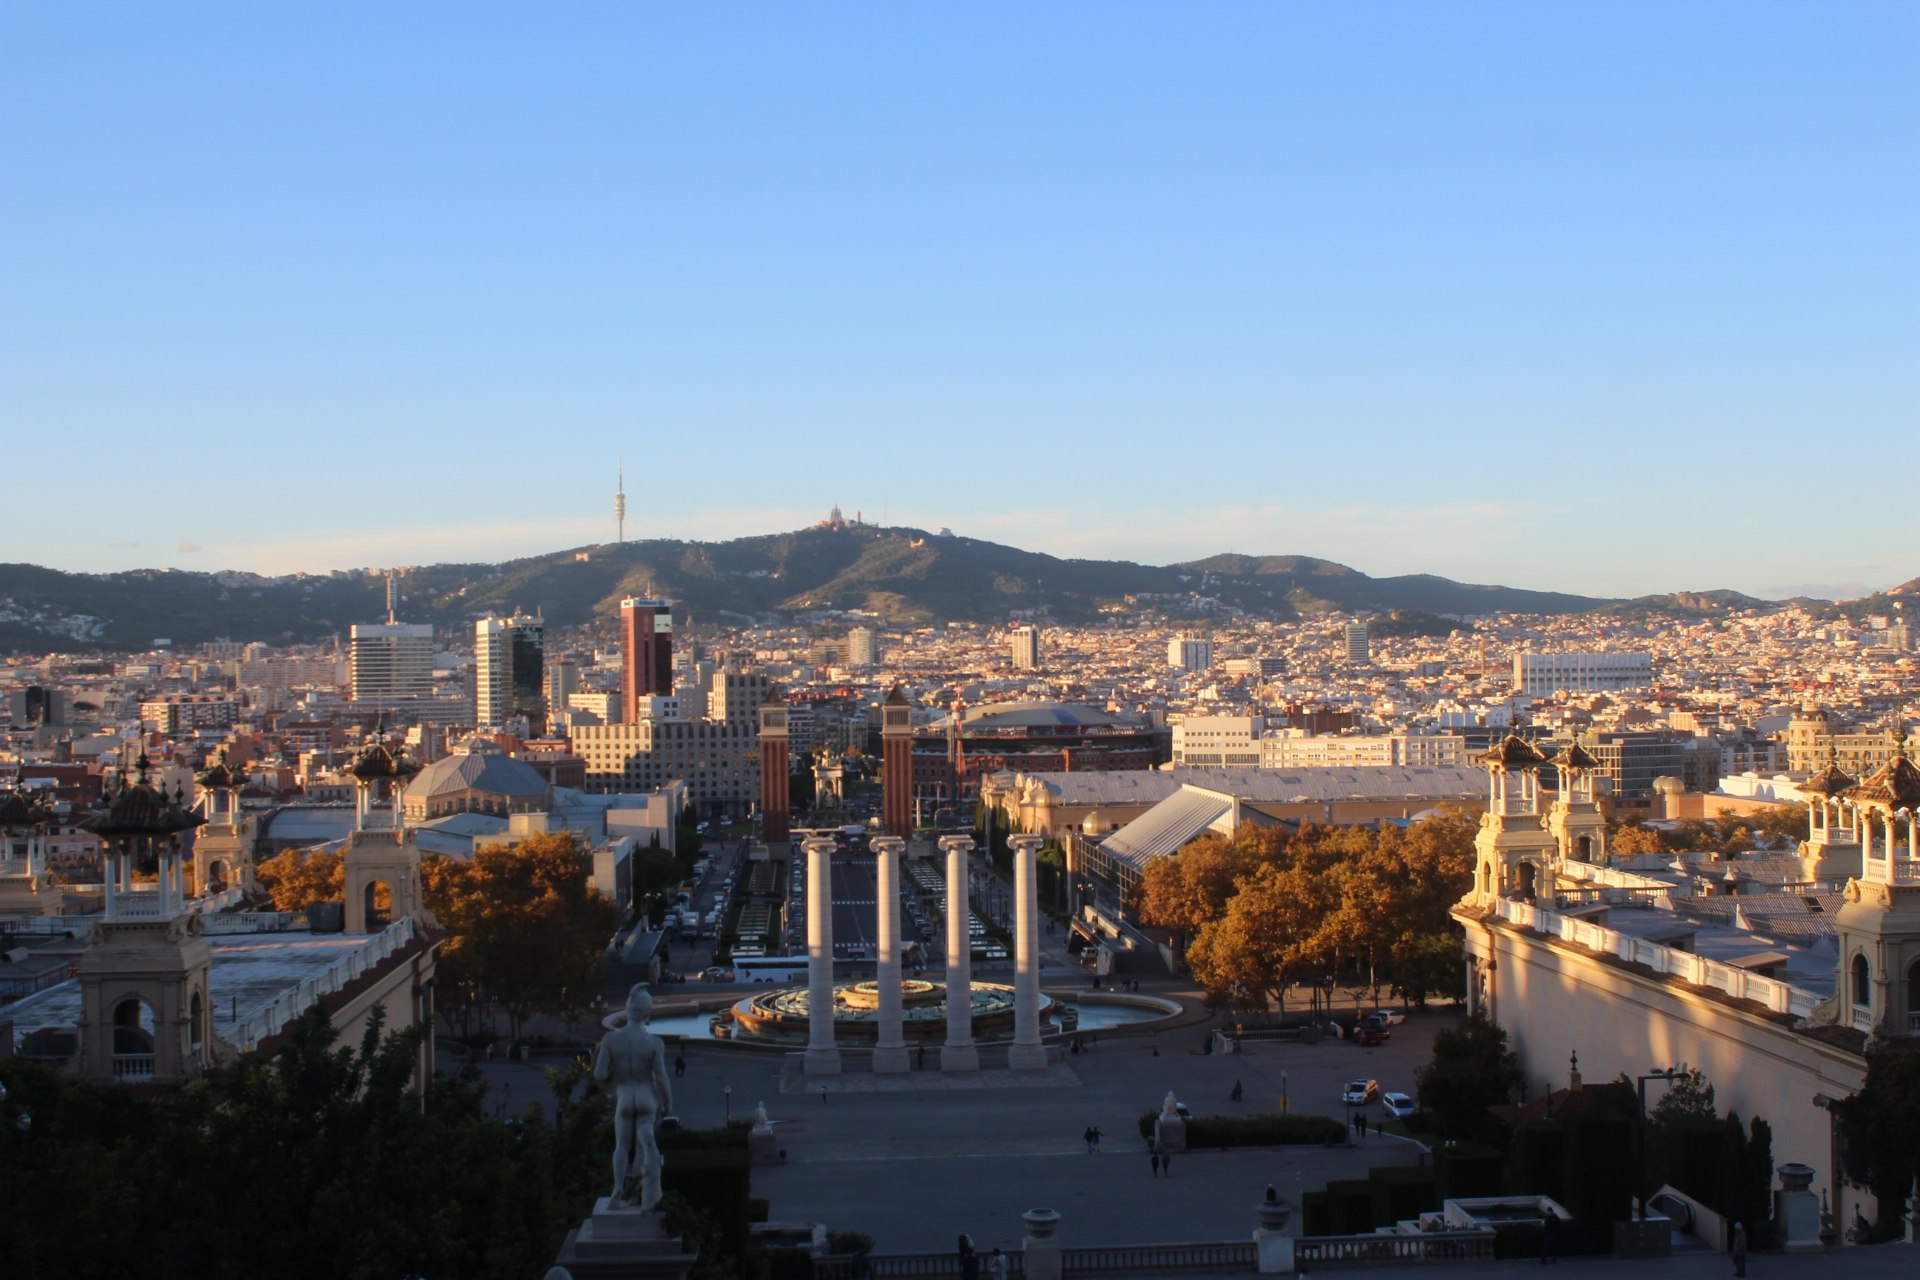 View of Placa De Espana from the Museum of Catalunya.